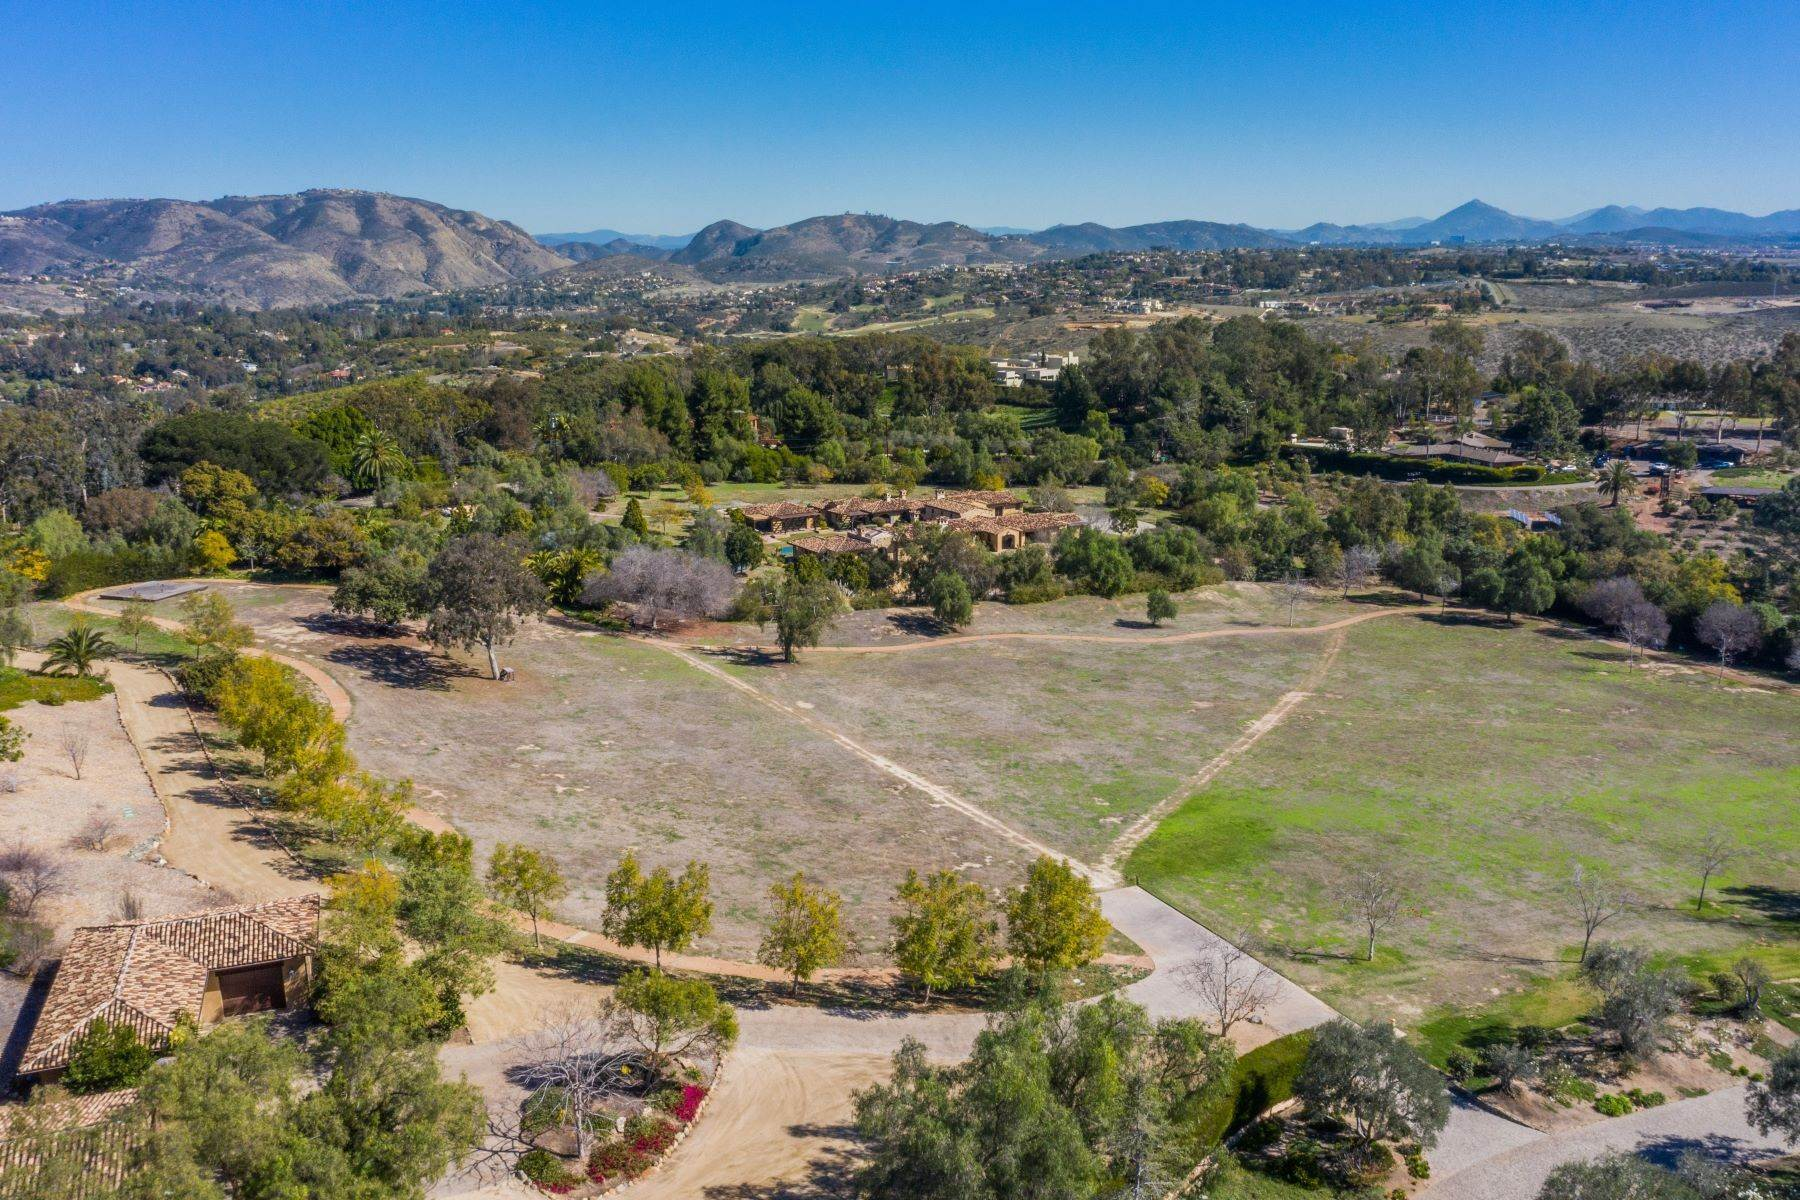 3. Land for Sale at 17048 El Mirador, Rancho Santa Fe, CA 92067 17048 El Mirador Rancho Santa Fe, California 92067 United States